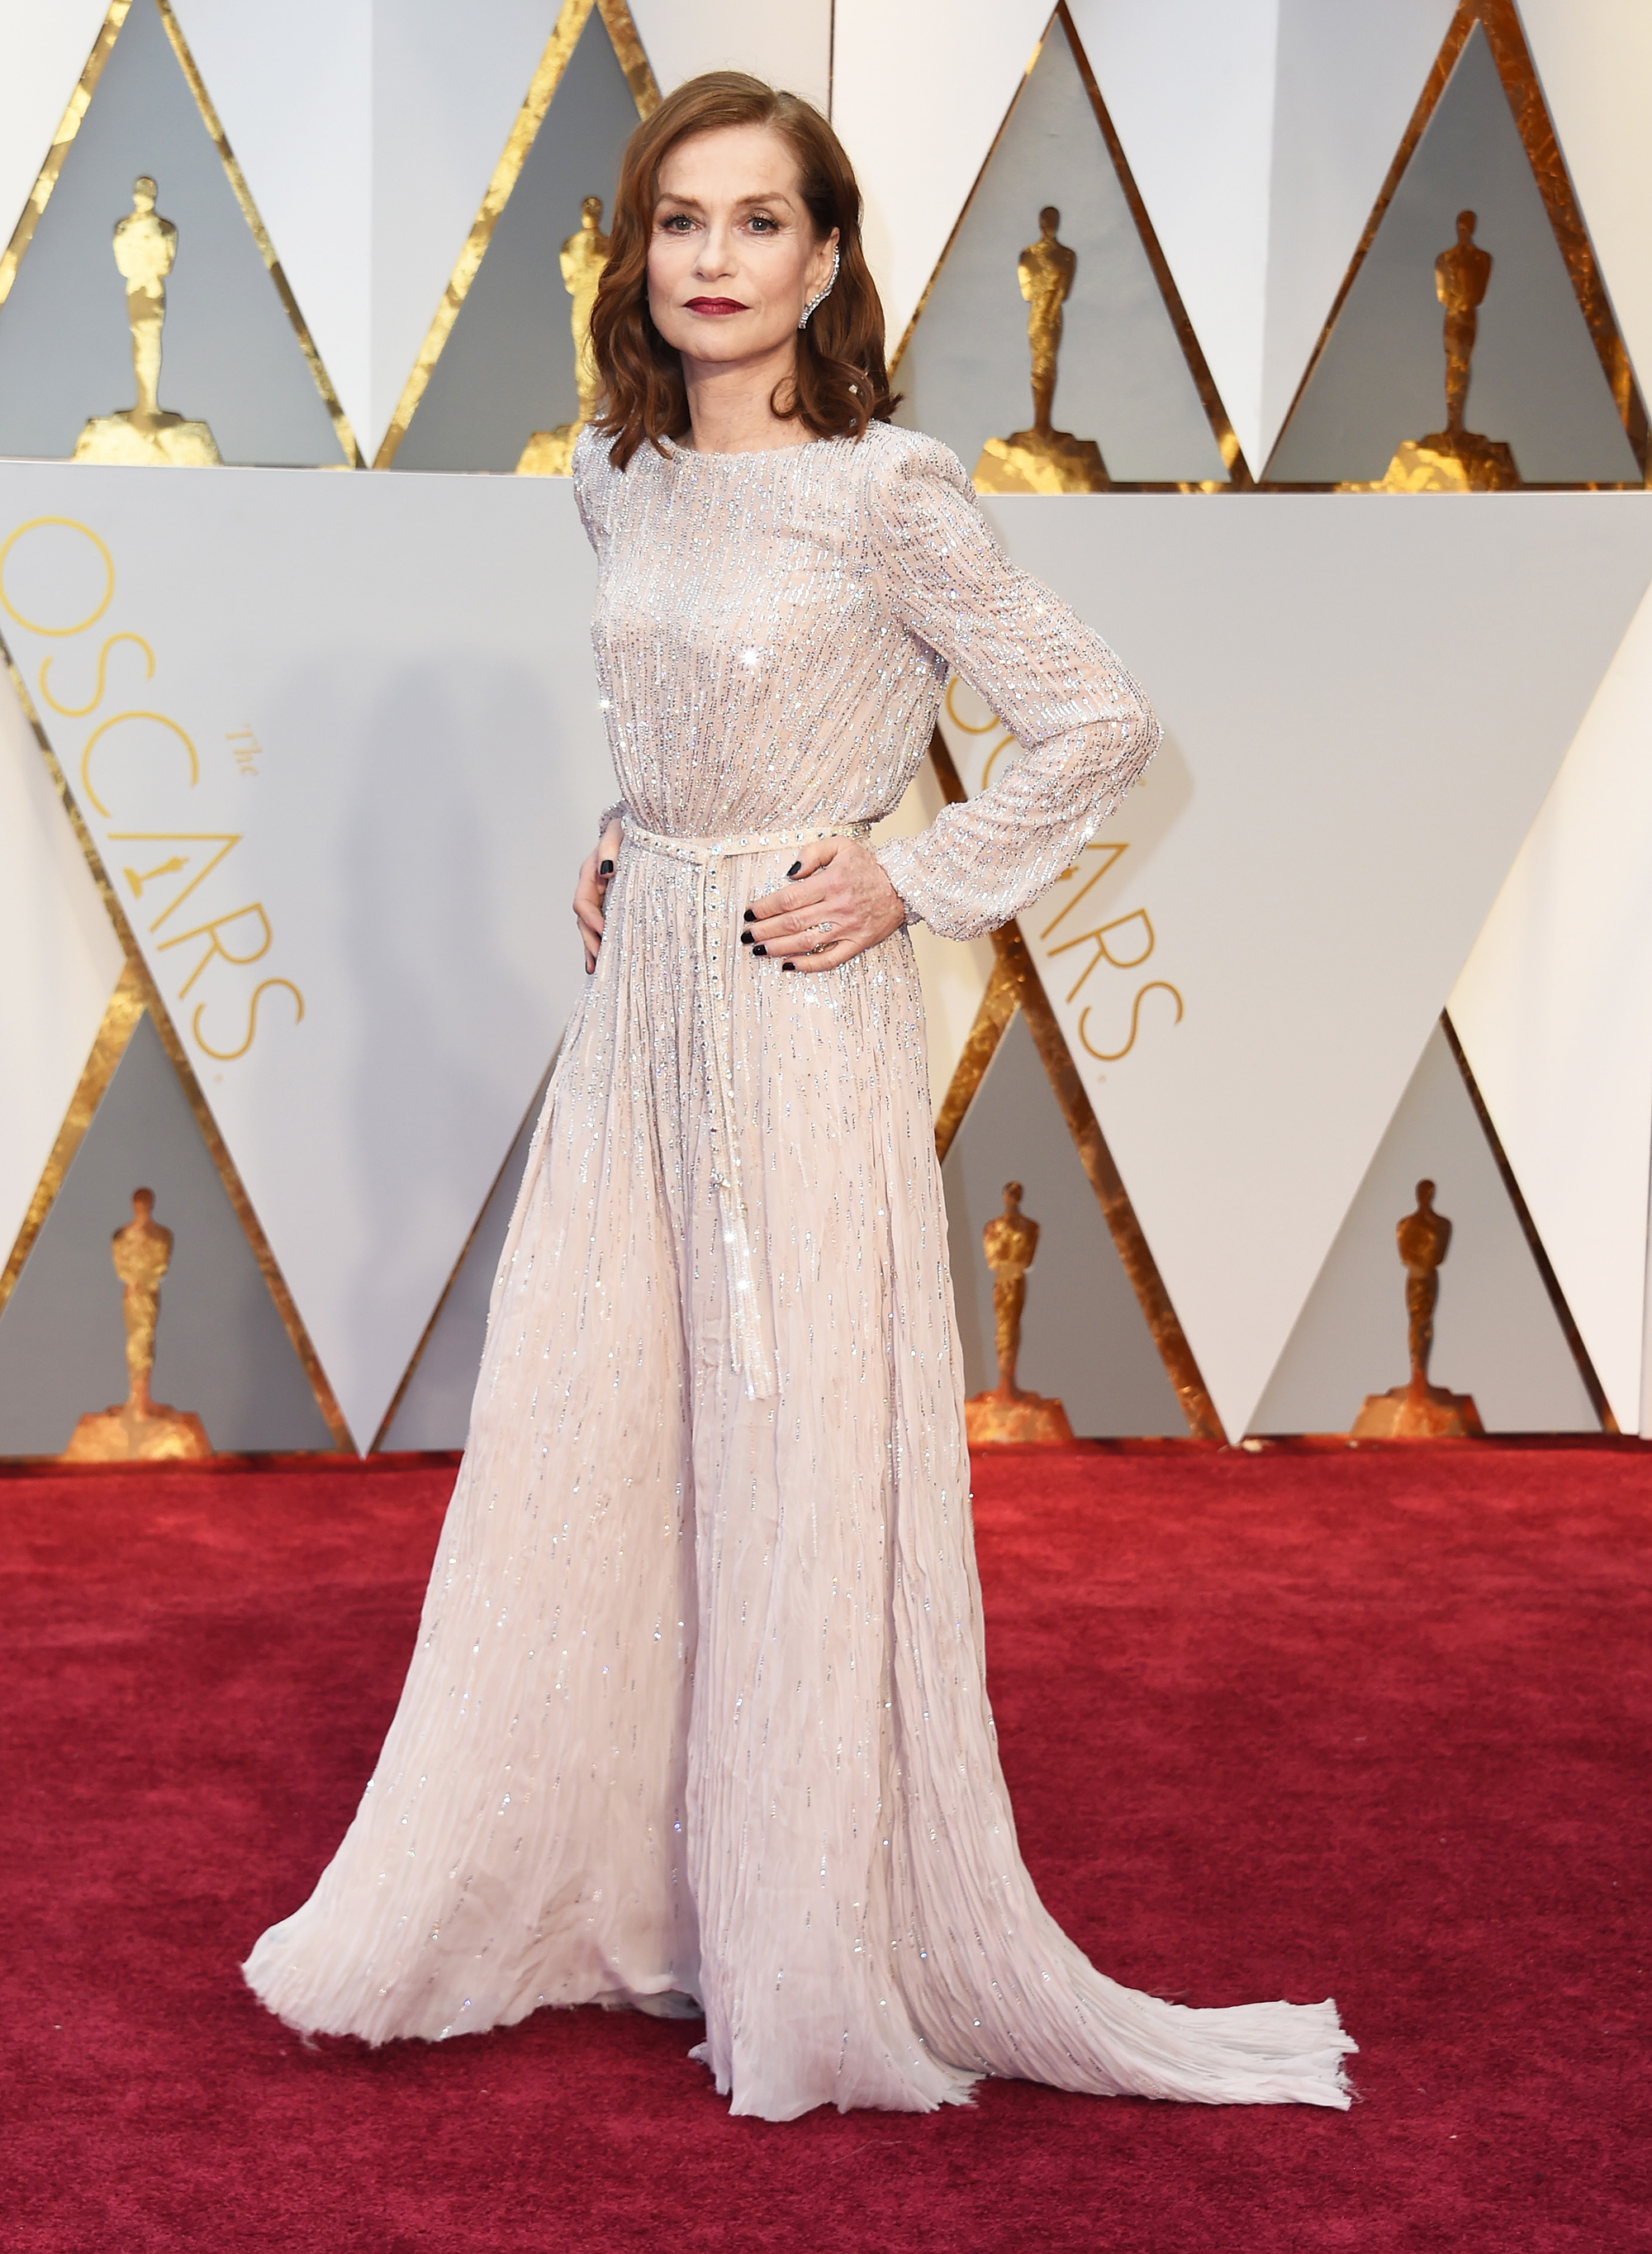 Isabelle Huppert on the red carpet for the 89th Oscars, on Feb. 26, 2017 in Hollywood, Calif.